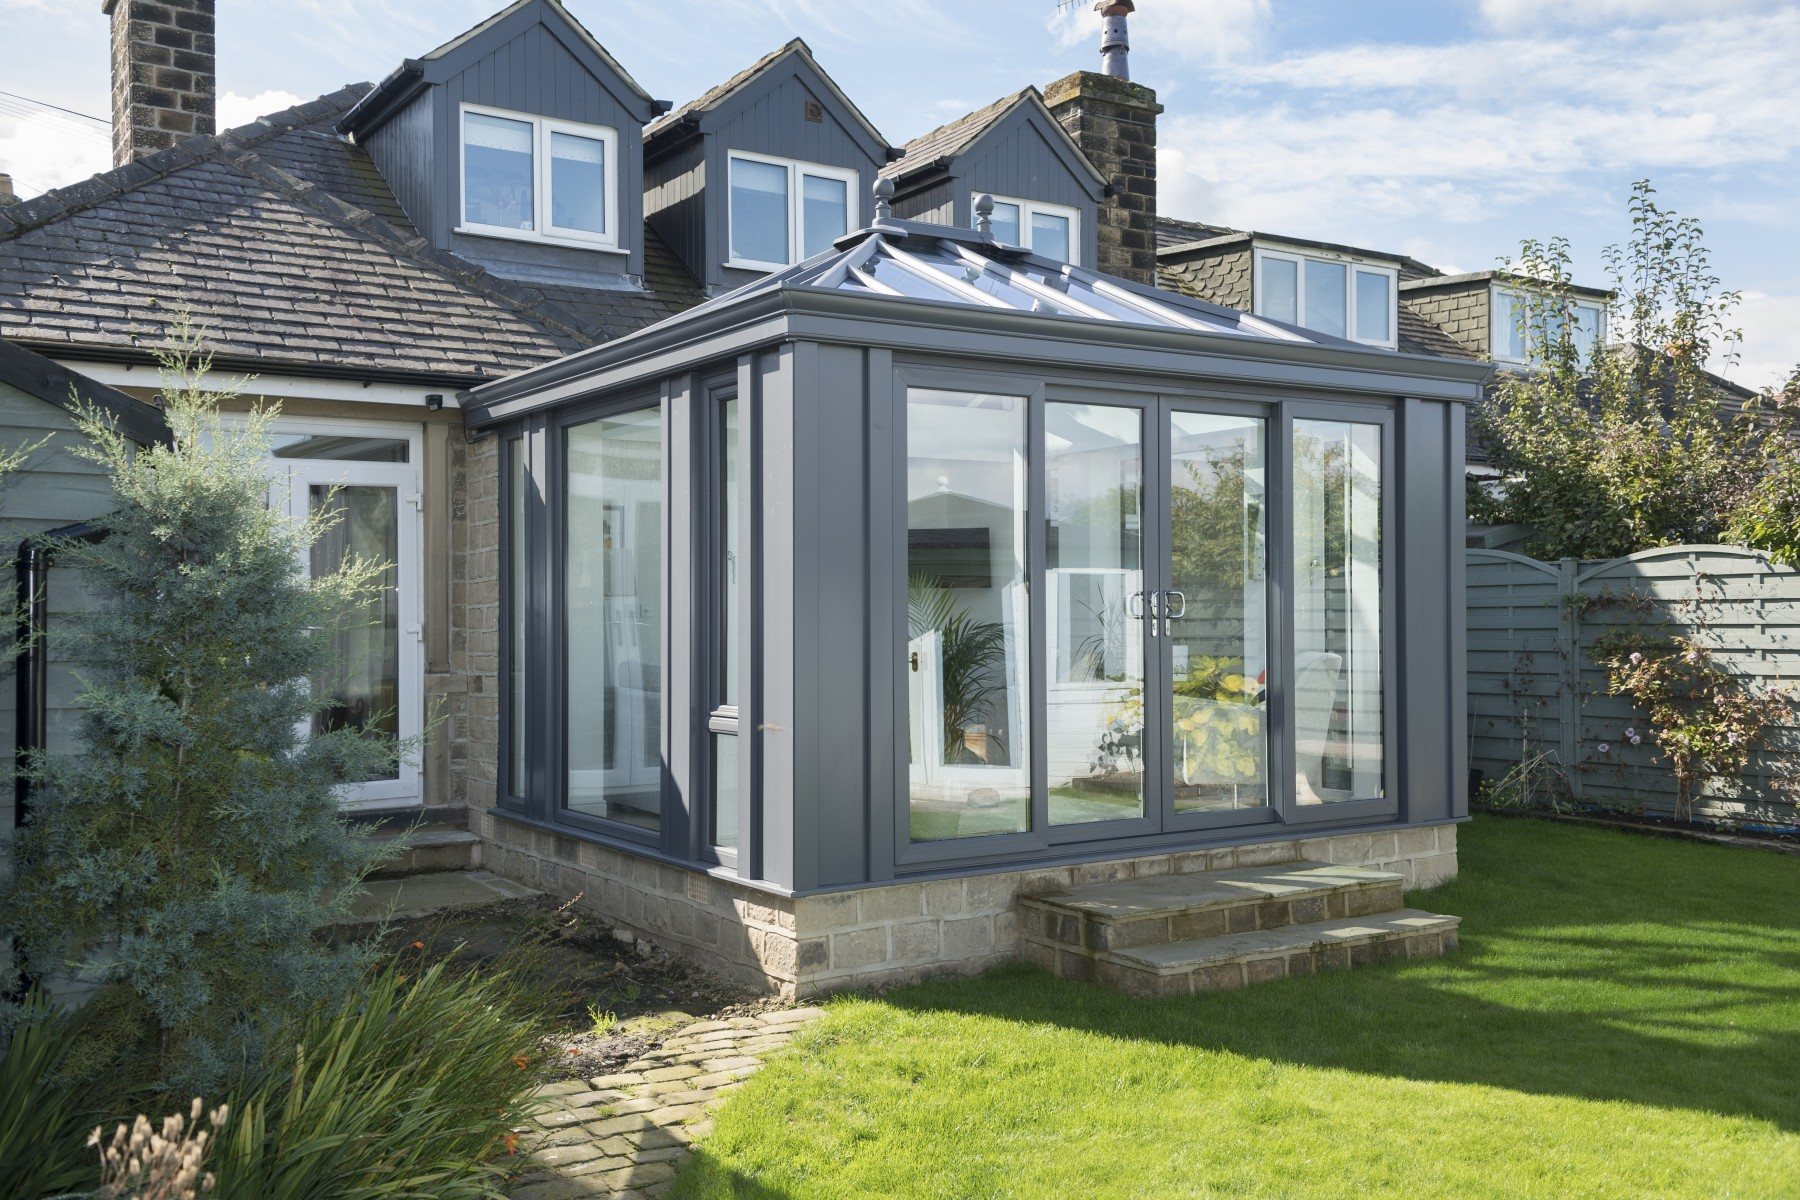 Orangery gallery orangery designs style ideas for House plans with conservatory